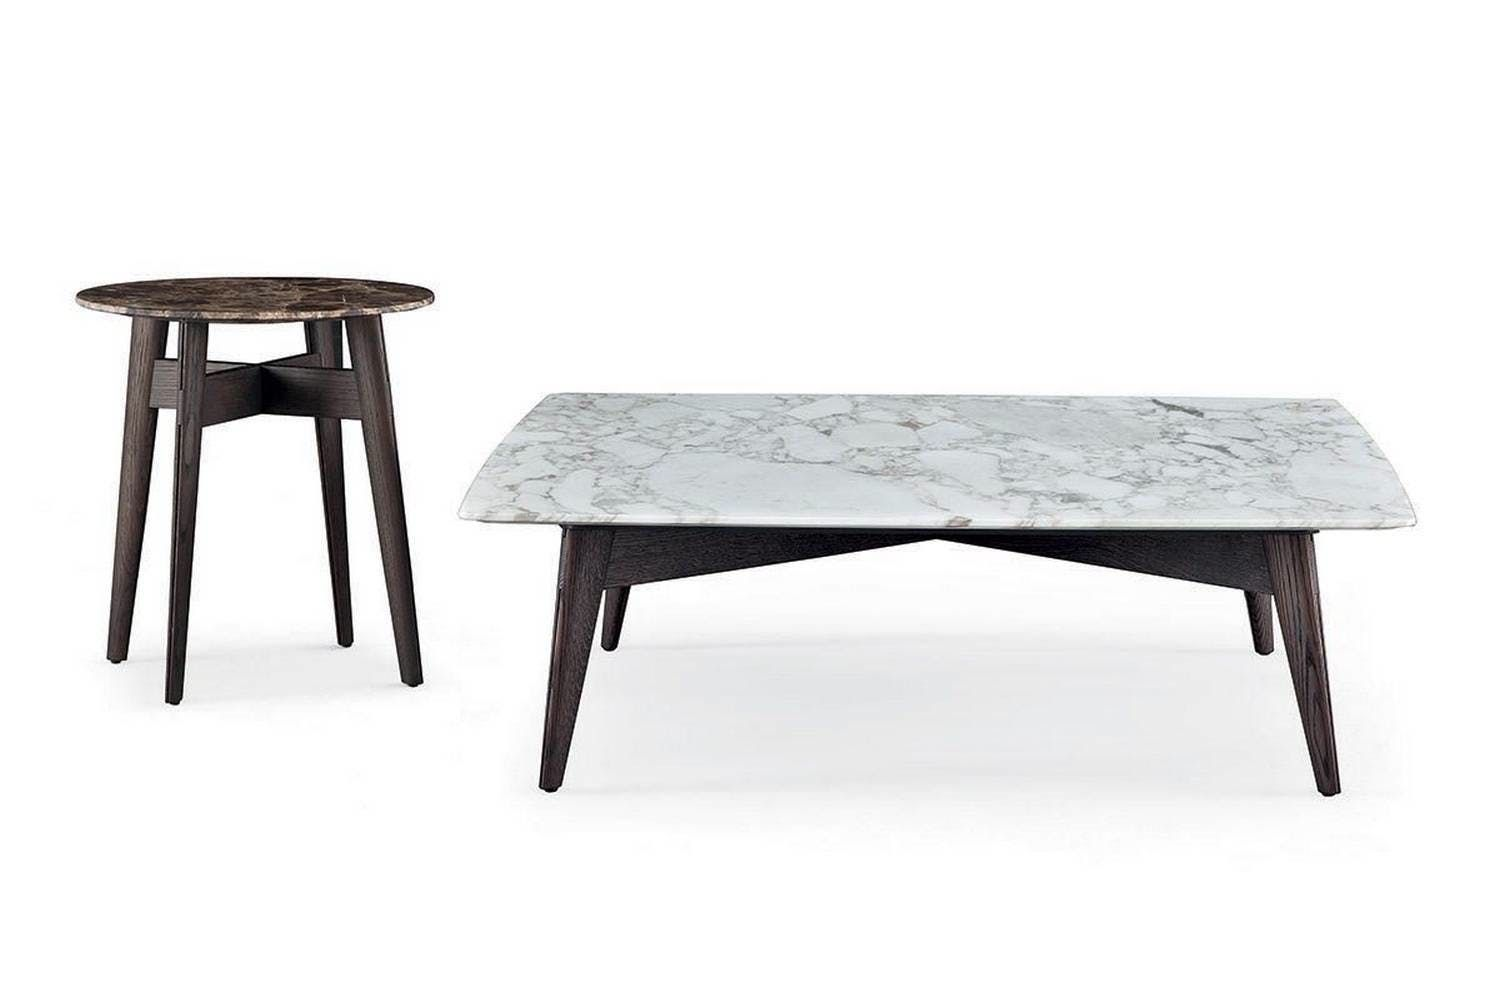 Bigger Coffee Table By Carlo Colombo For Poliform Big Coffee Table Coffee Table Square Coffee Table [ 1000 x 1500 Pixel ]